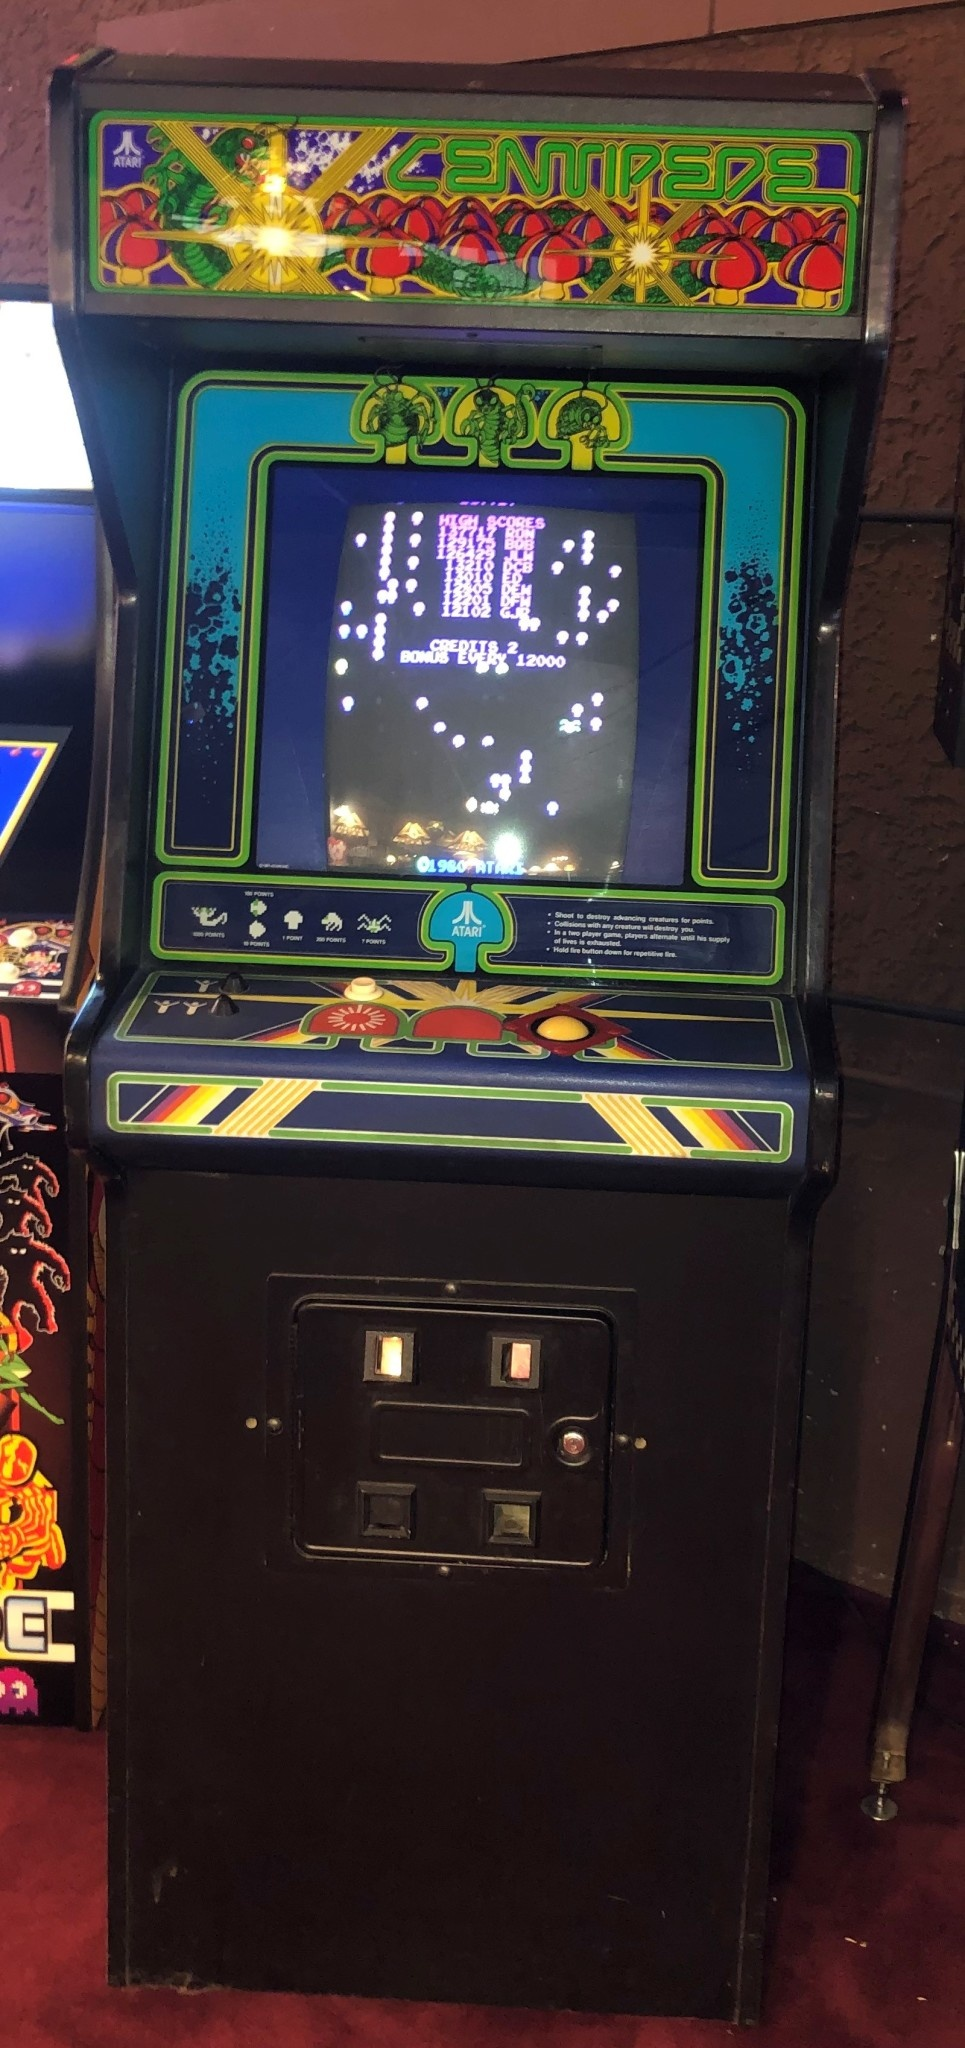 Centipede Arcade Machine Game Rr Games